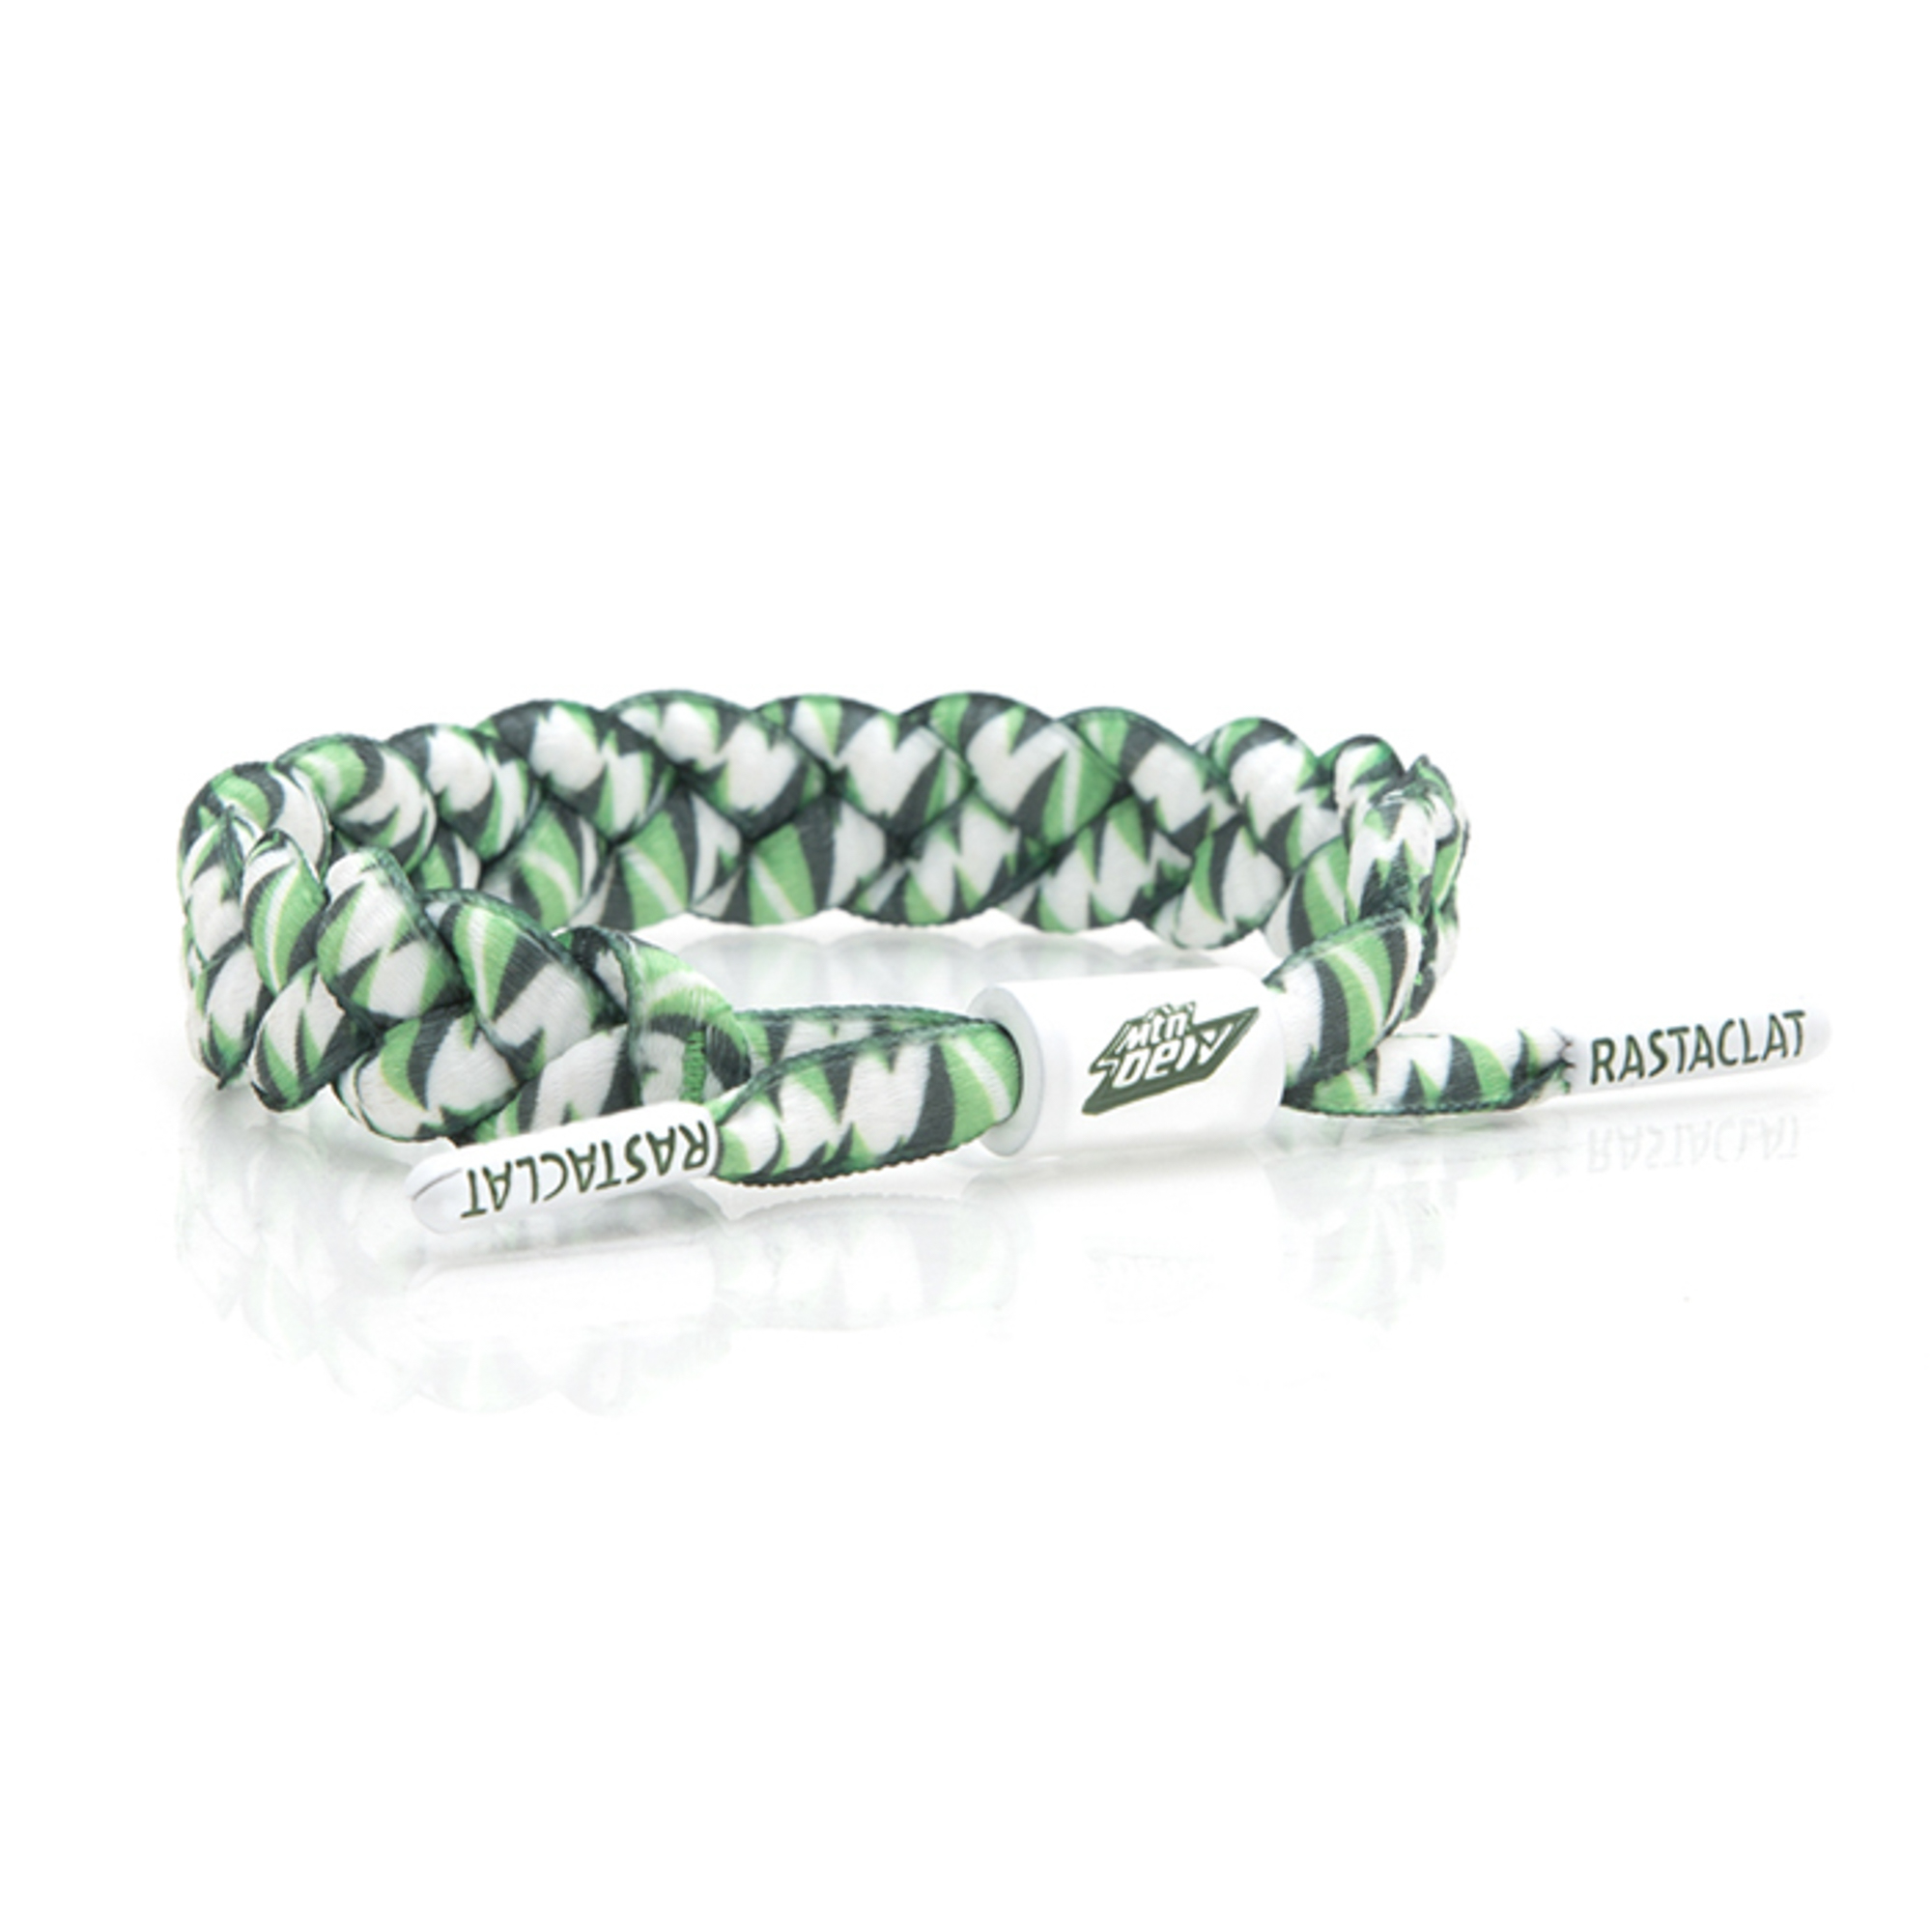 2000x2000 Rastaclat Shoelace Bracelet Philippines Vector Zeus.ph